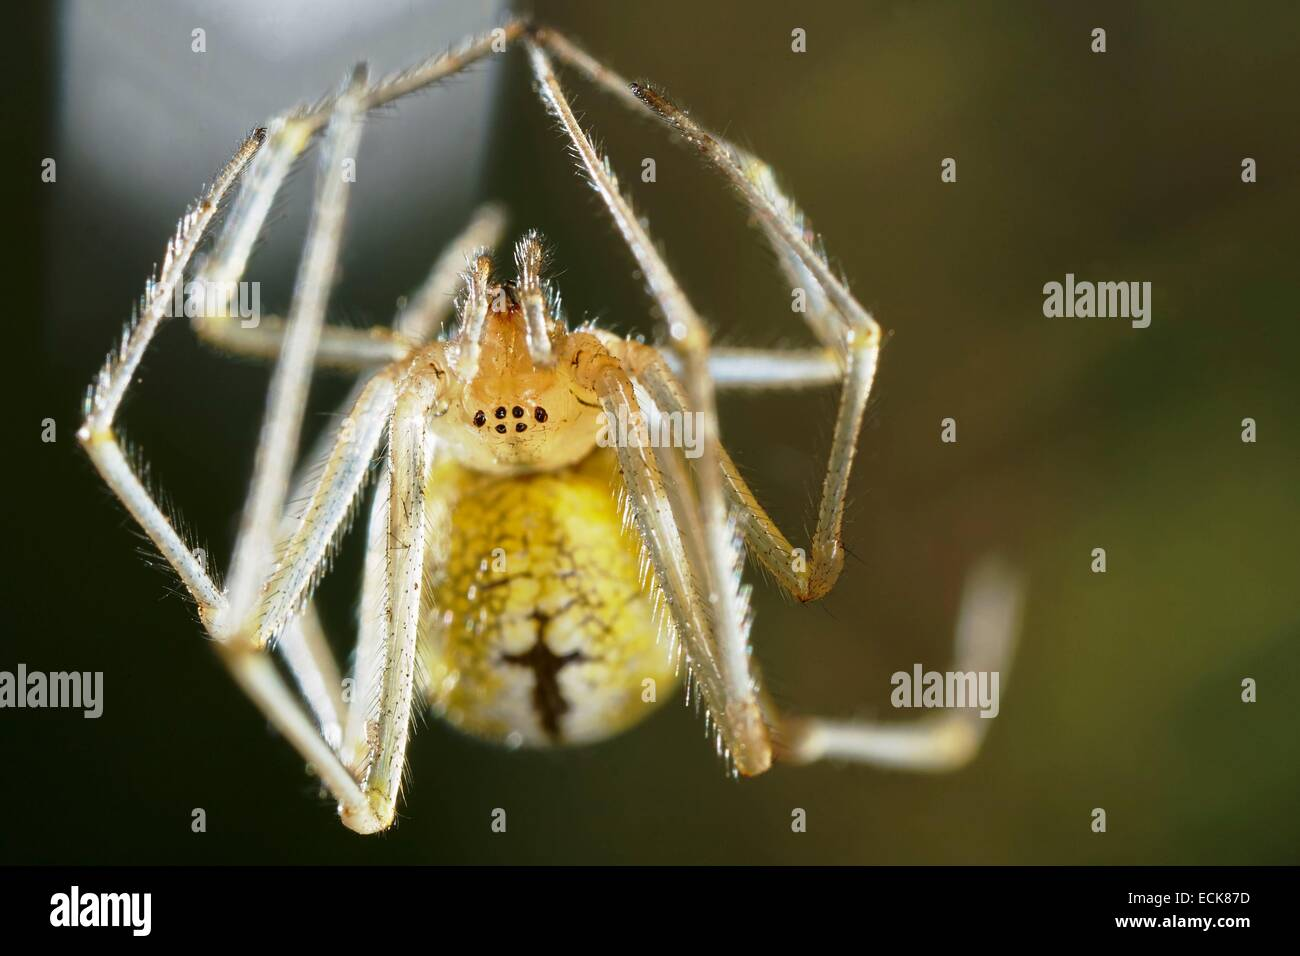 France, Araneae, Theridiidae, Candy stripeáspider (Enoplognatha ovata), Portrait of female - Stock Image